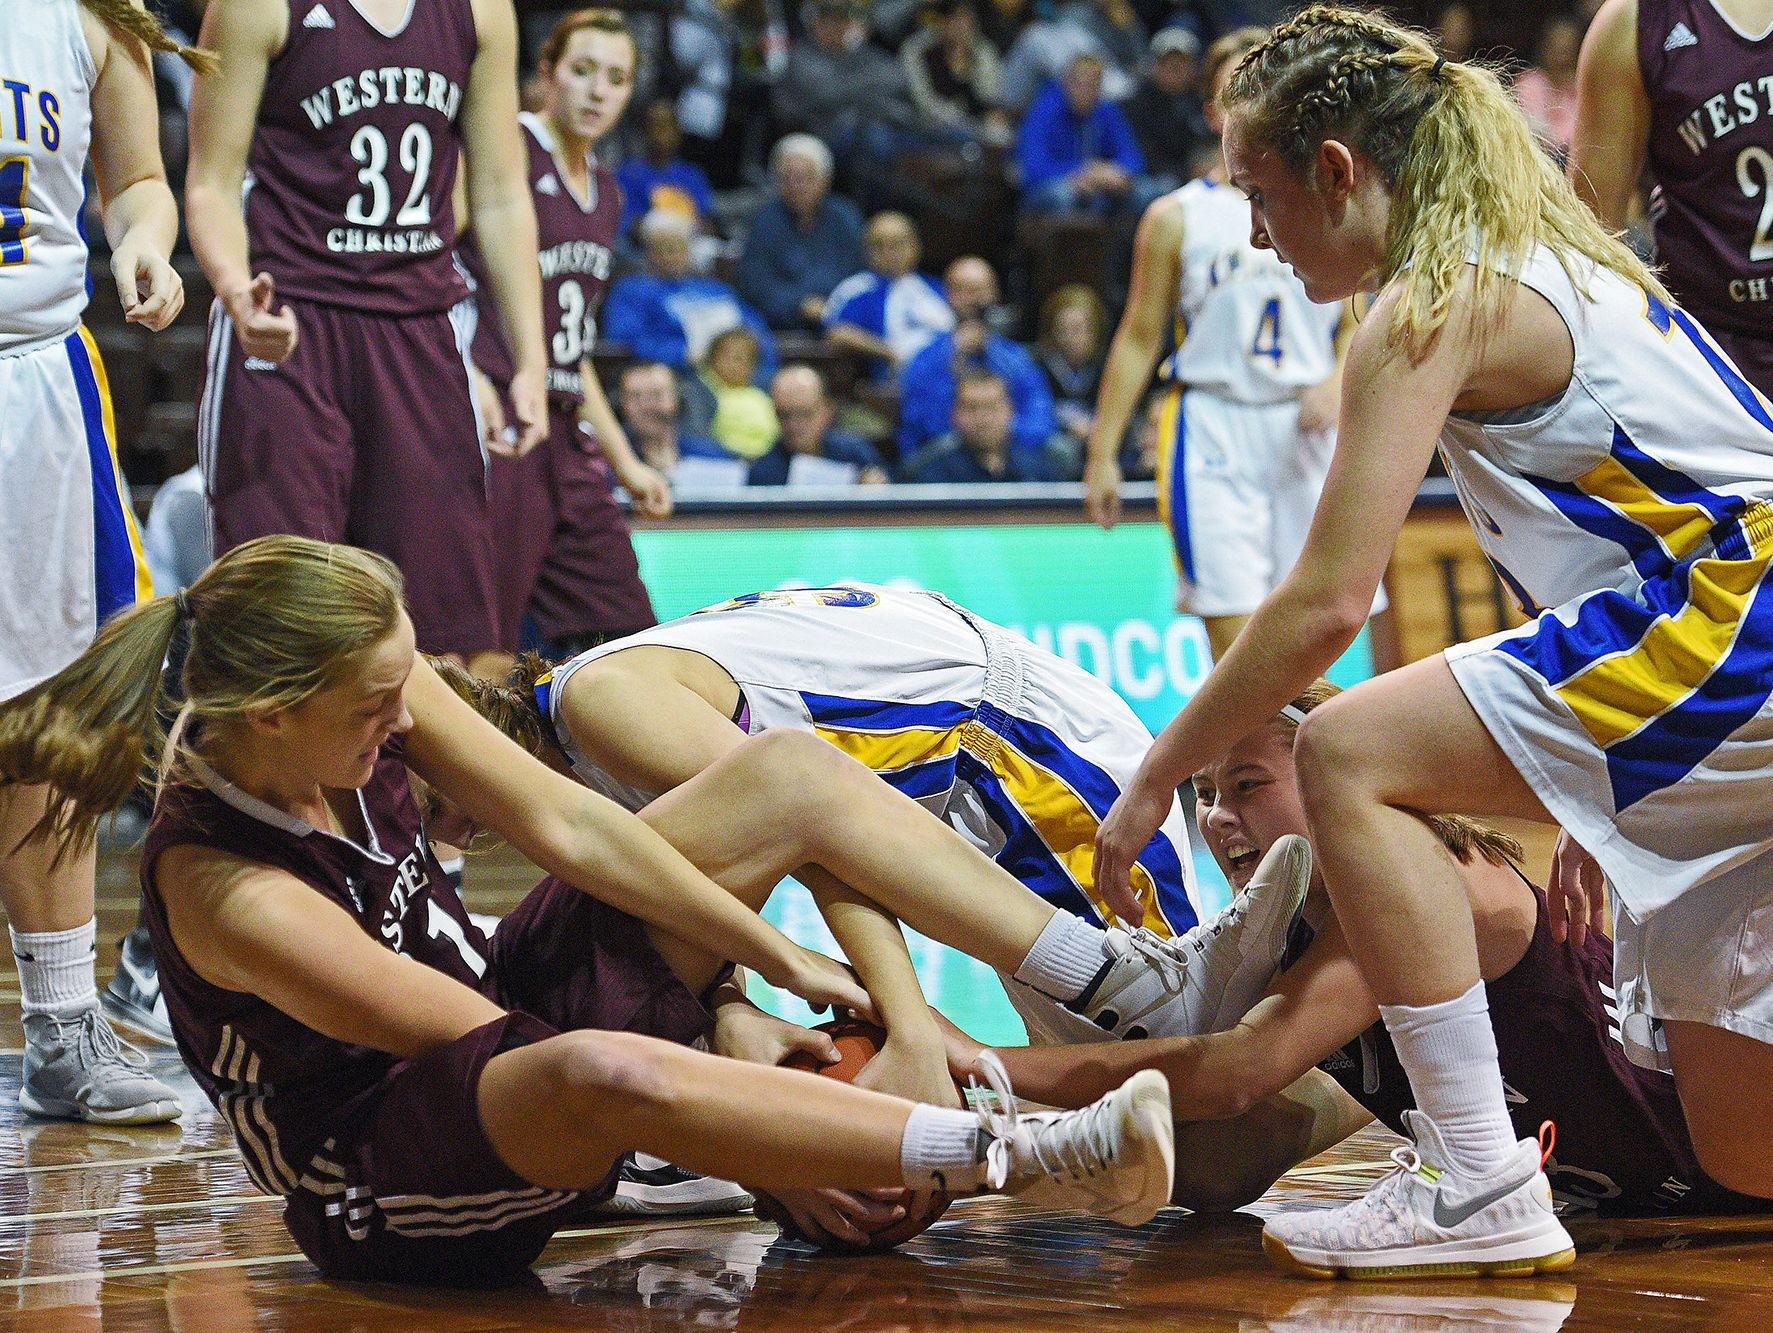 O'Gorman and Western Christian players struggle for the ball during the Edith Sanford Breast Center Girls Pentagon Classic Saturday, Dec. 17, 2016, at the Sanford Pentagon in Sioux Falls.